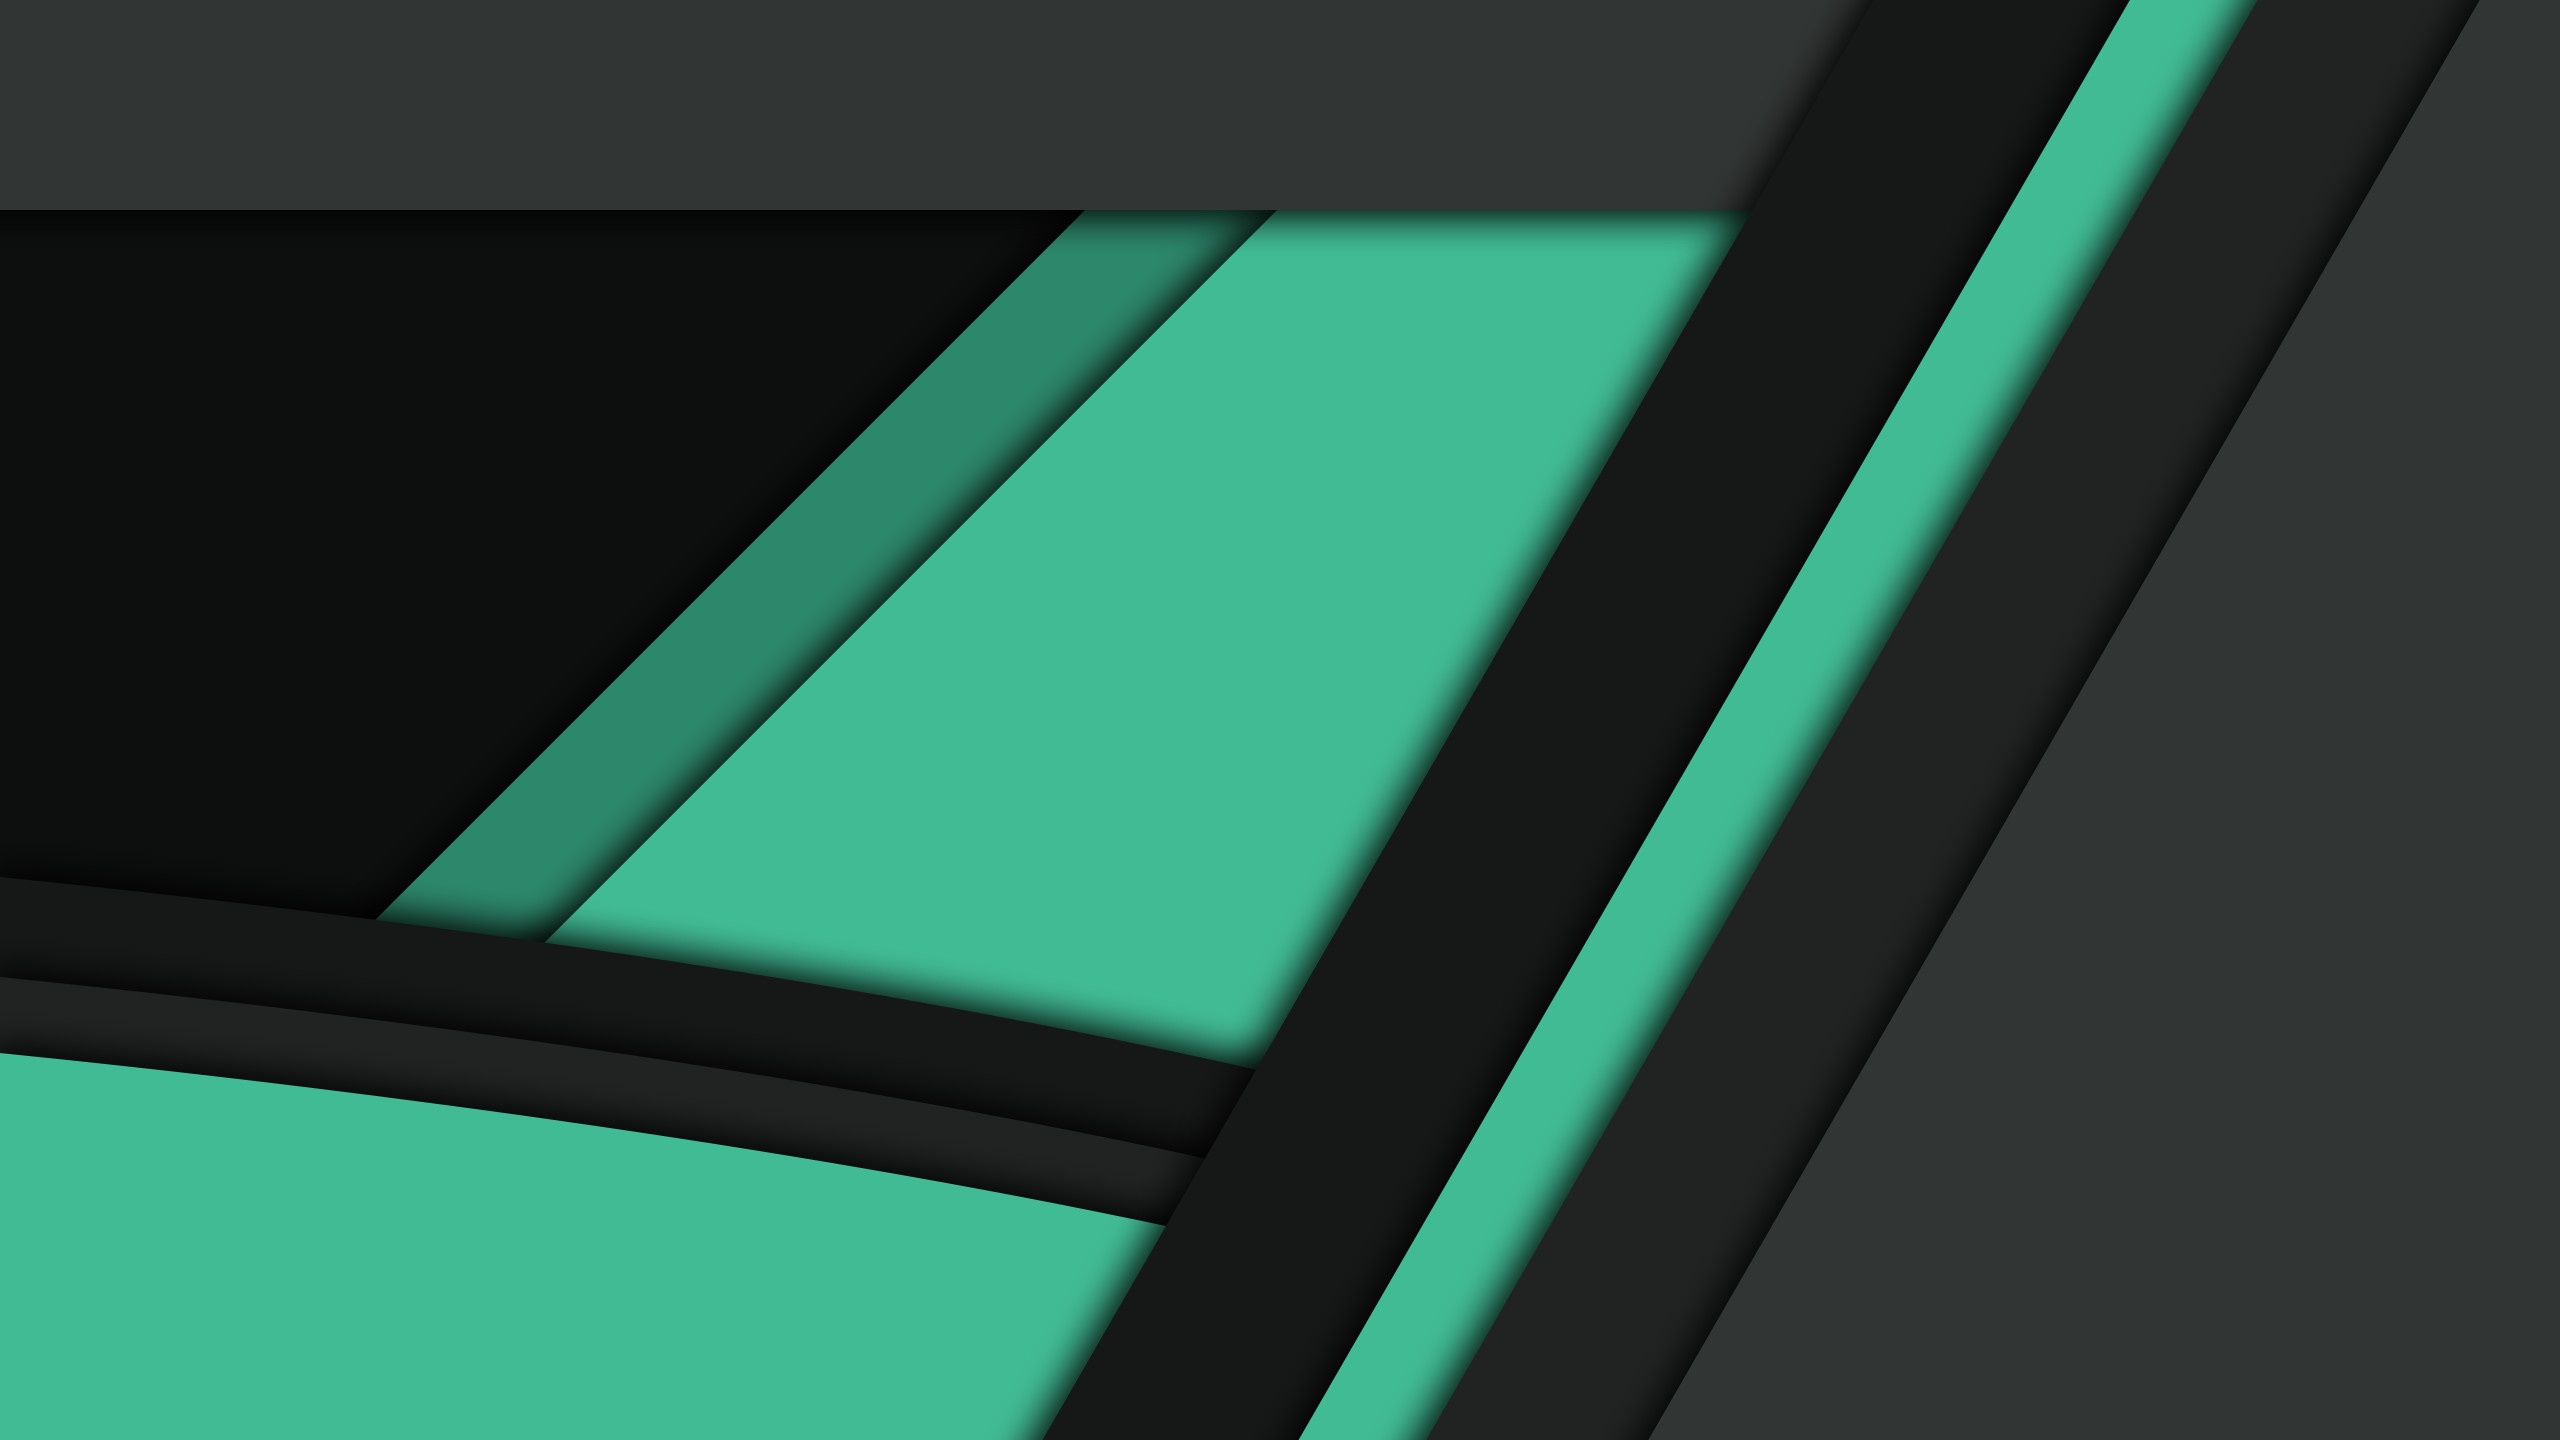 2048x1152 Black Green Material Design 2048x1152 Resolution